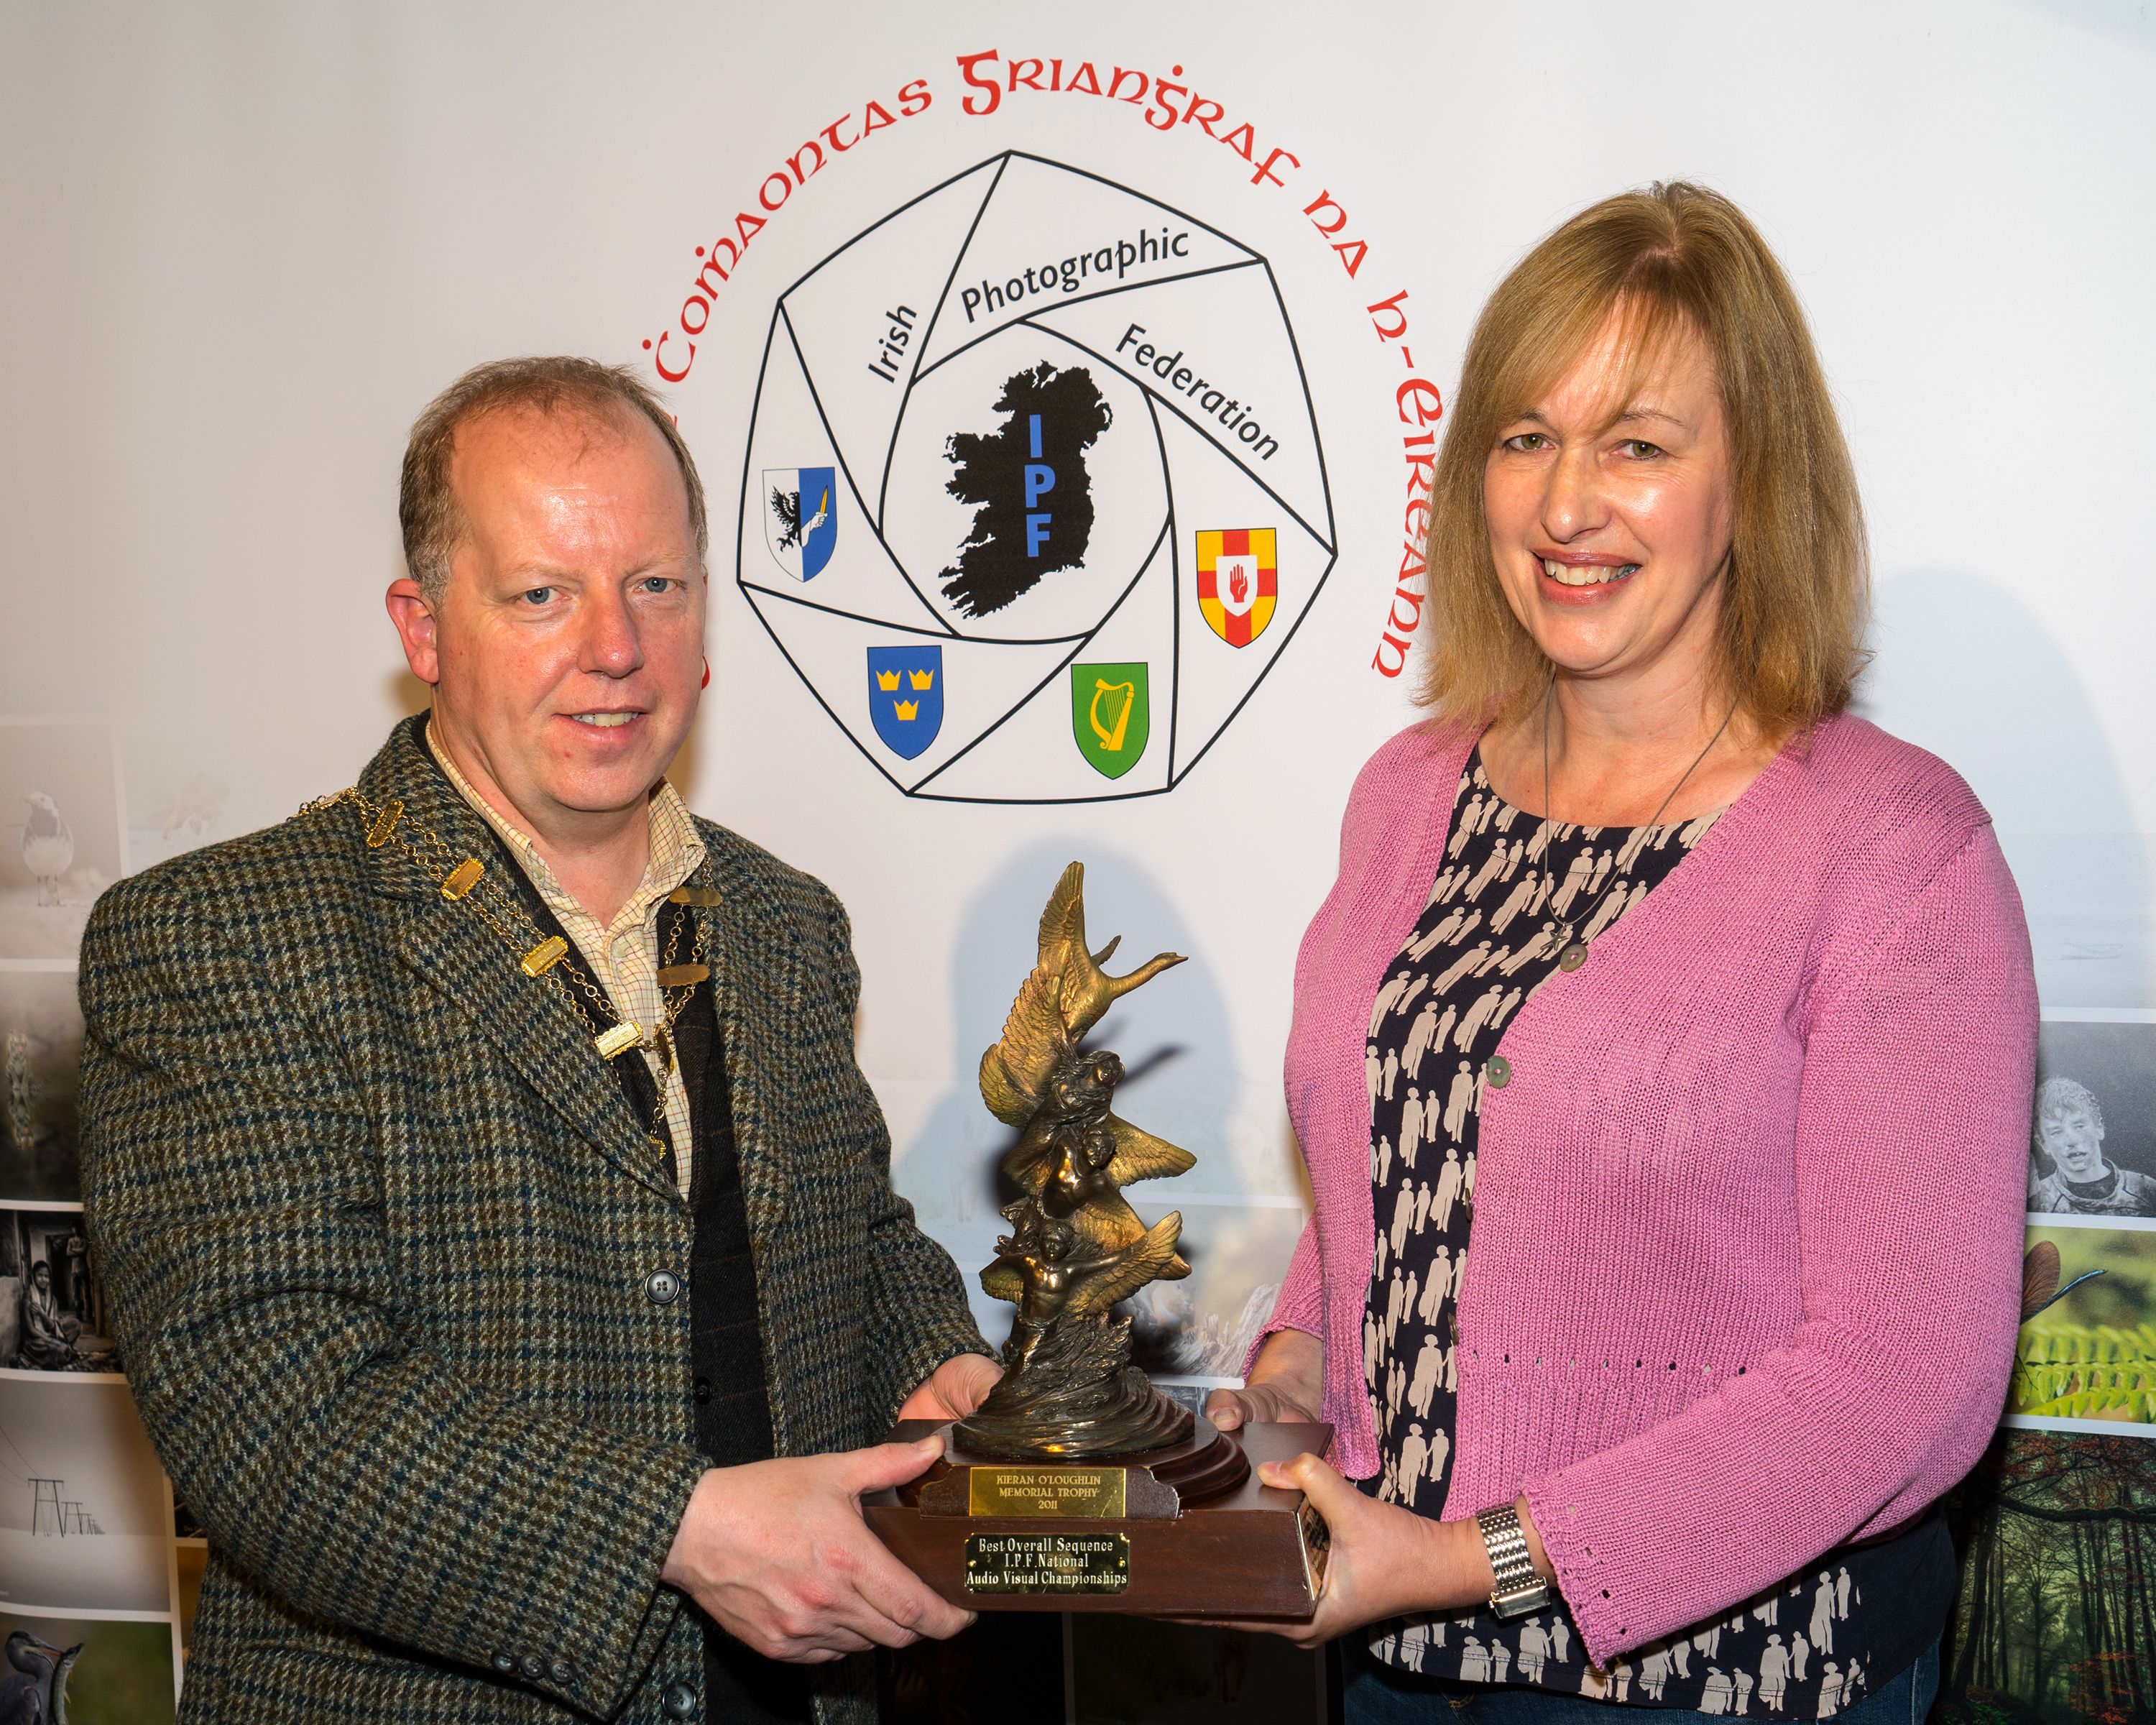 Dominic Reddin, FIPF presenting the Kieran O'Loughlin Memorial Trophy to Judith Kimber, LIPF DPAGB-AV